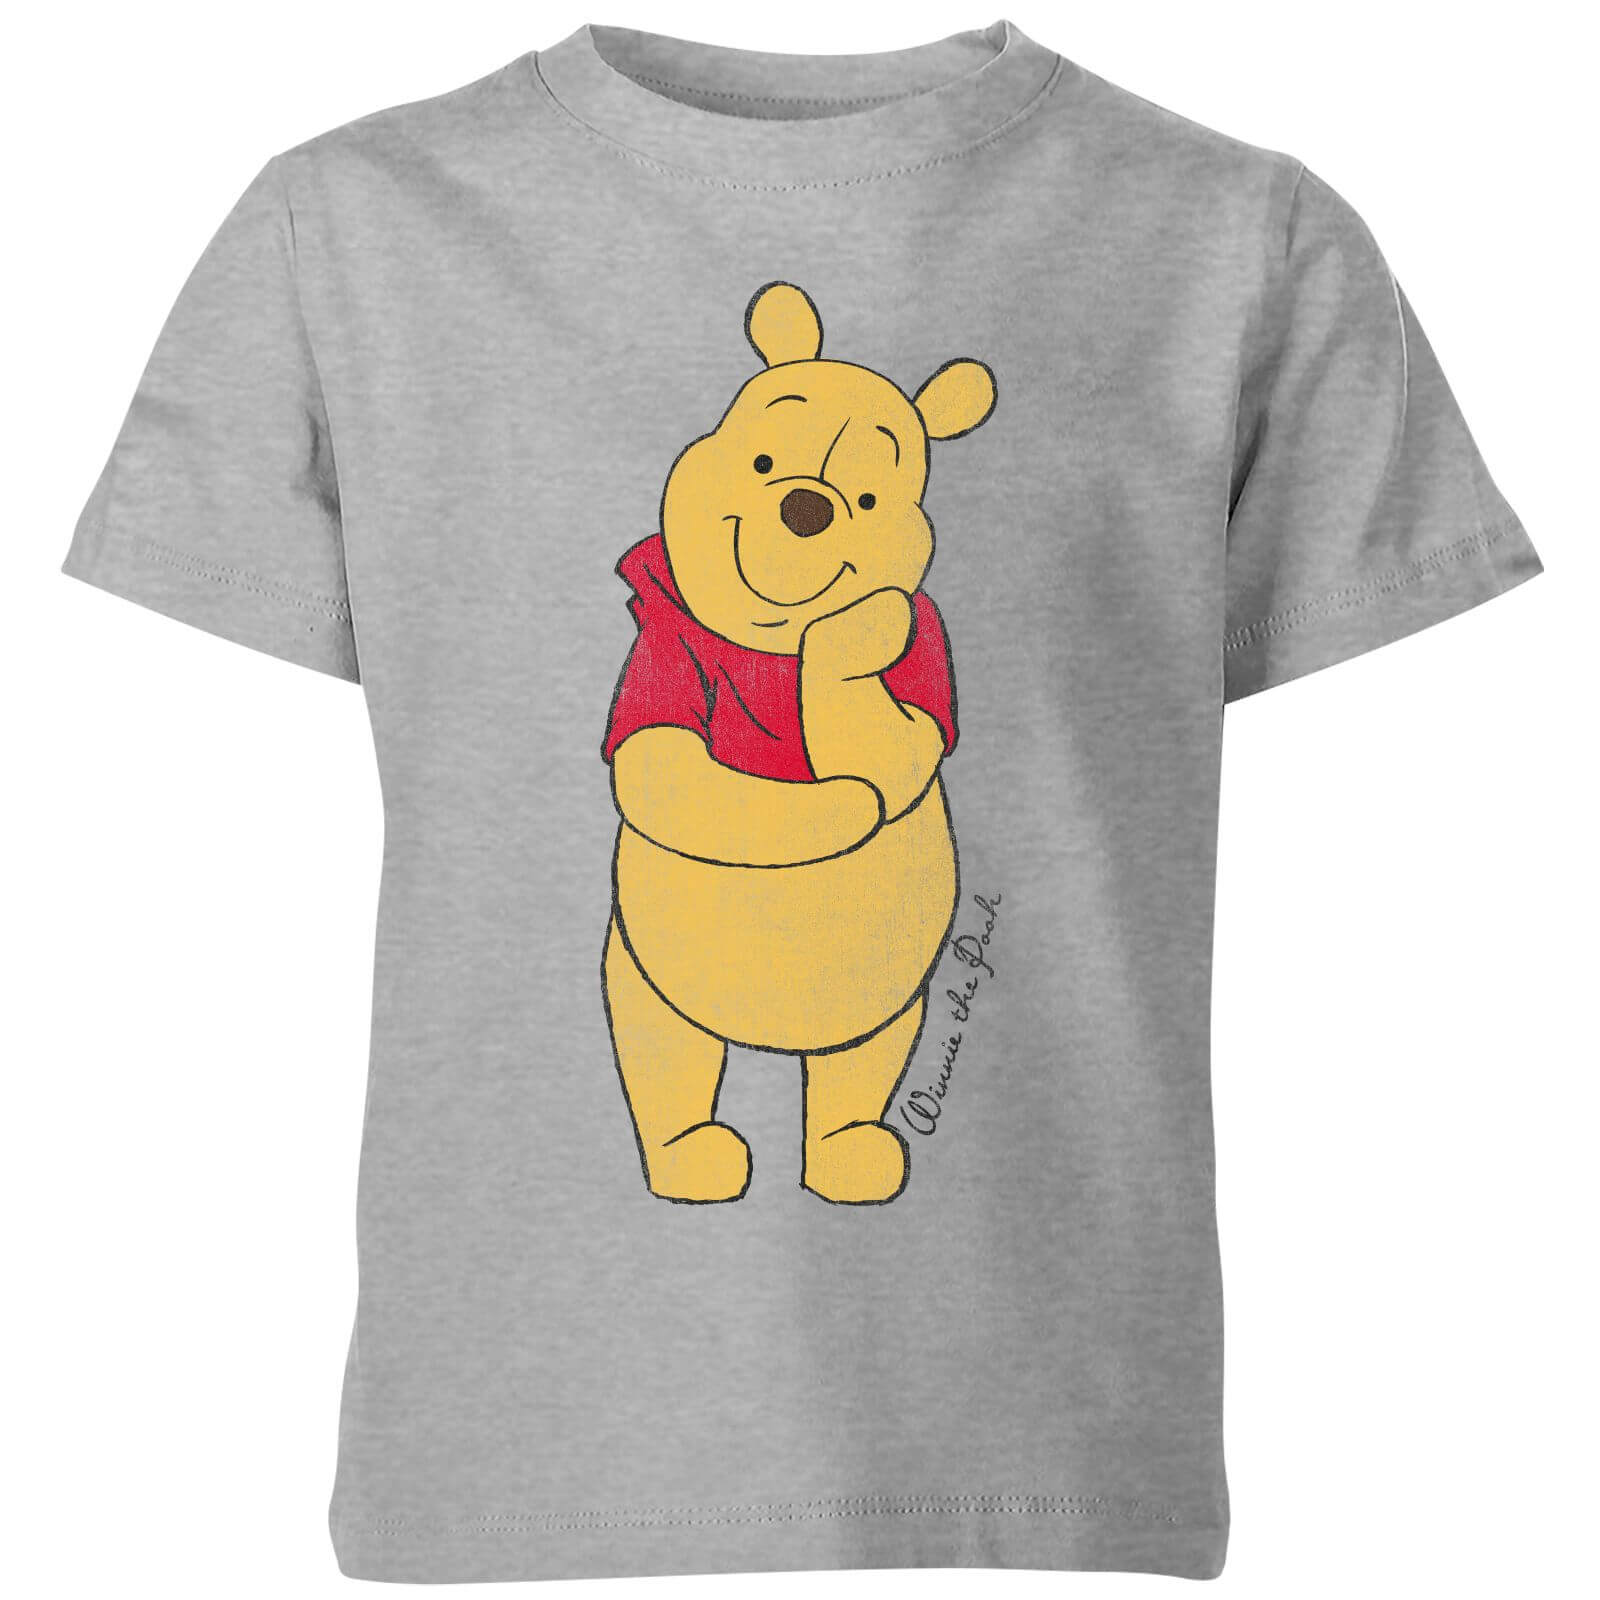 f8fb1bf066f0 Disney Winnie The Pooh Classic Kids  T-Shirt - Grey Clothing